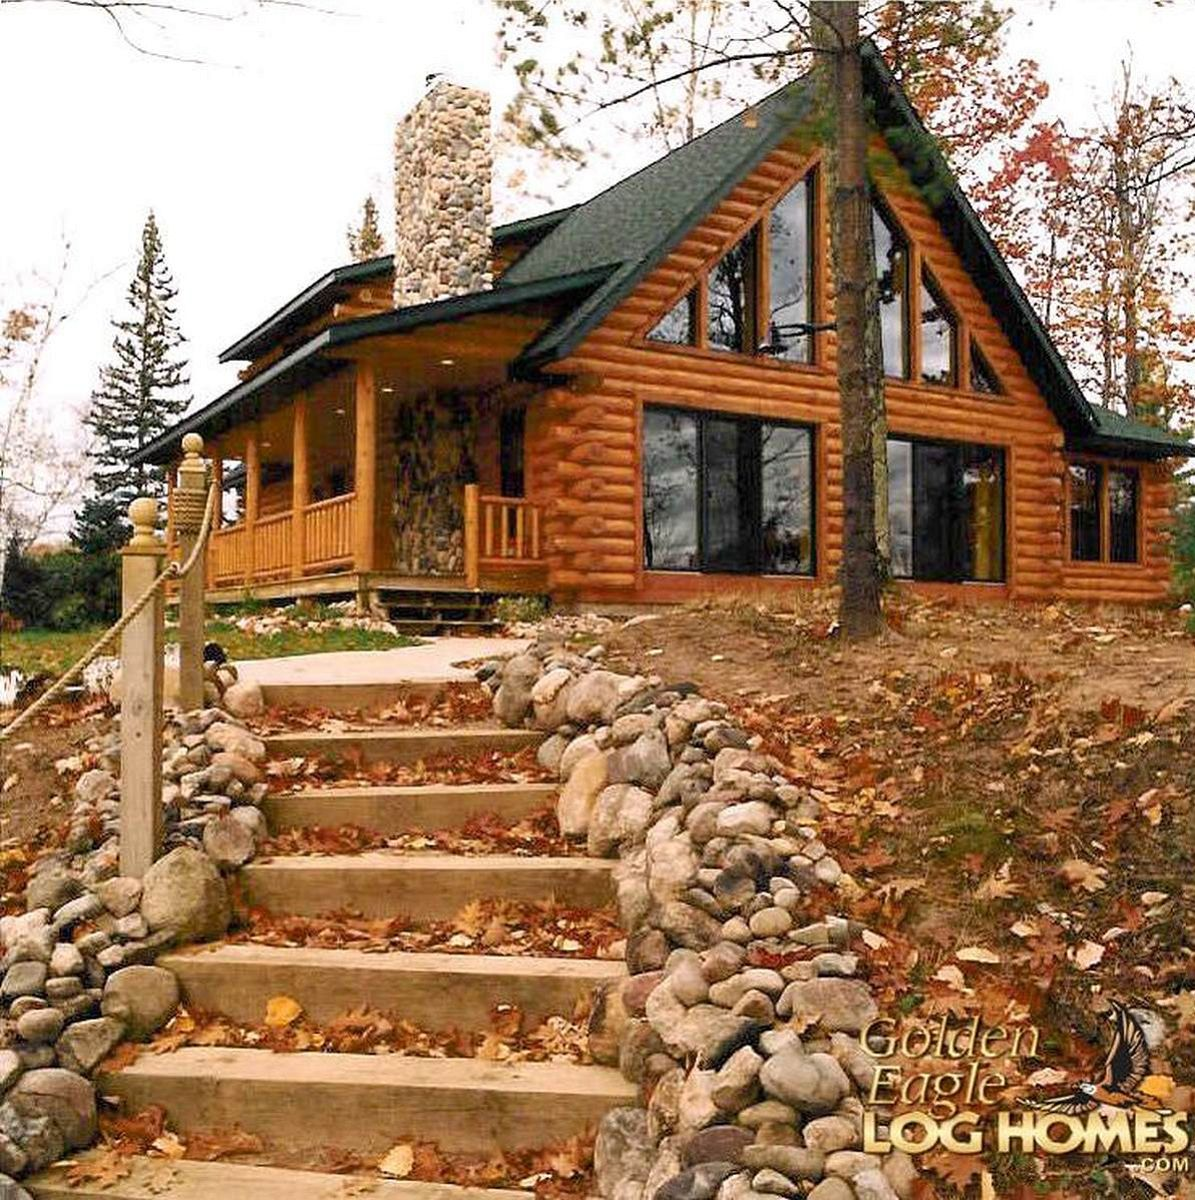 Log home by golden eagle log homes golden eagle log logs for Log cabin designs